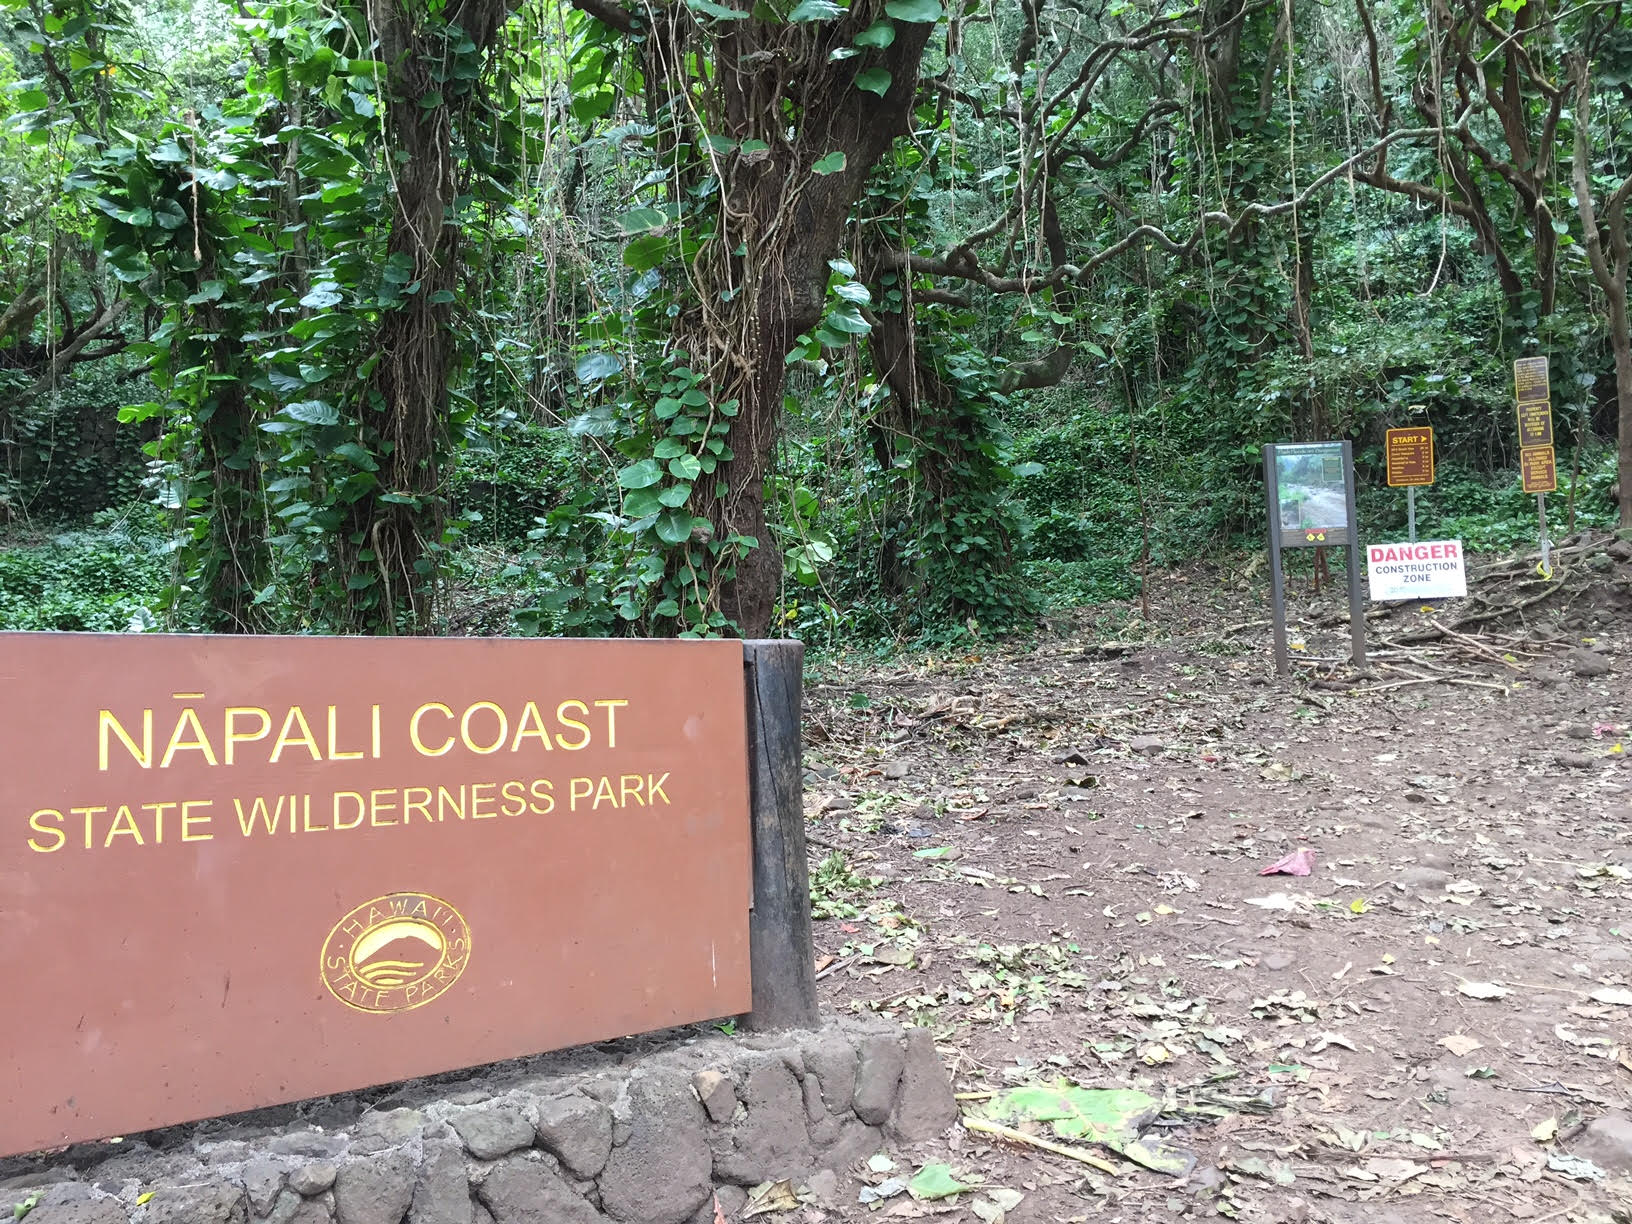 Napali Coast State Wilderness Park, Kauai